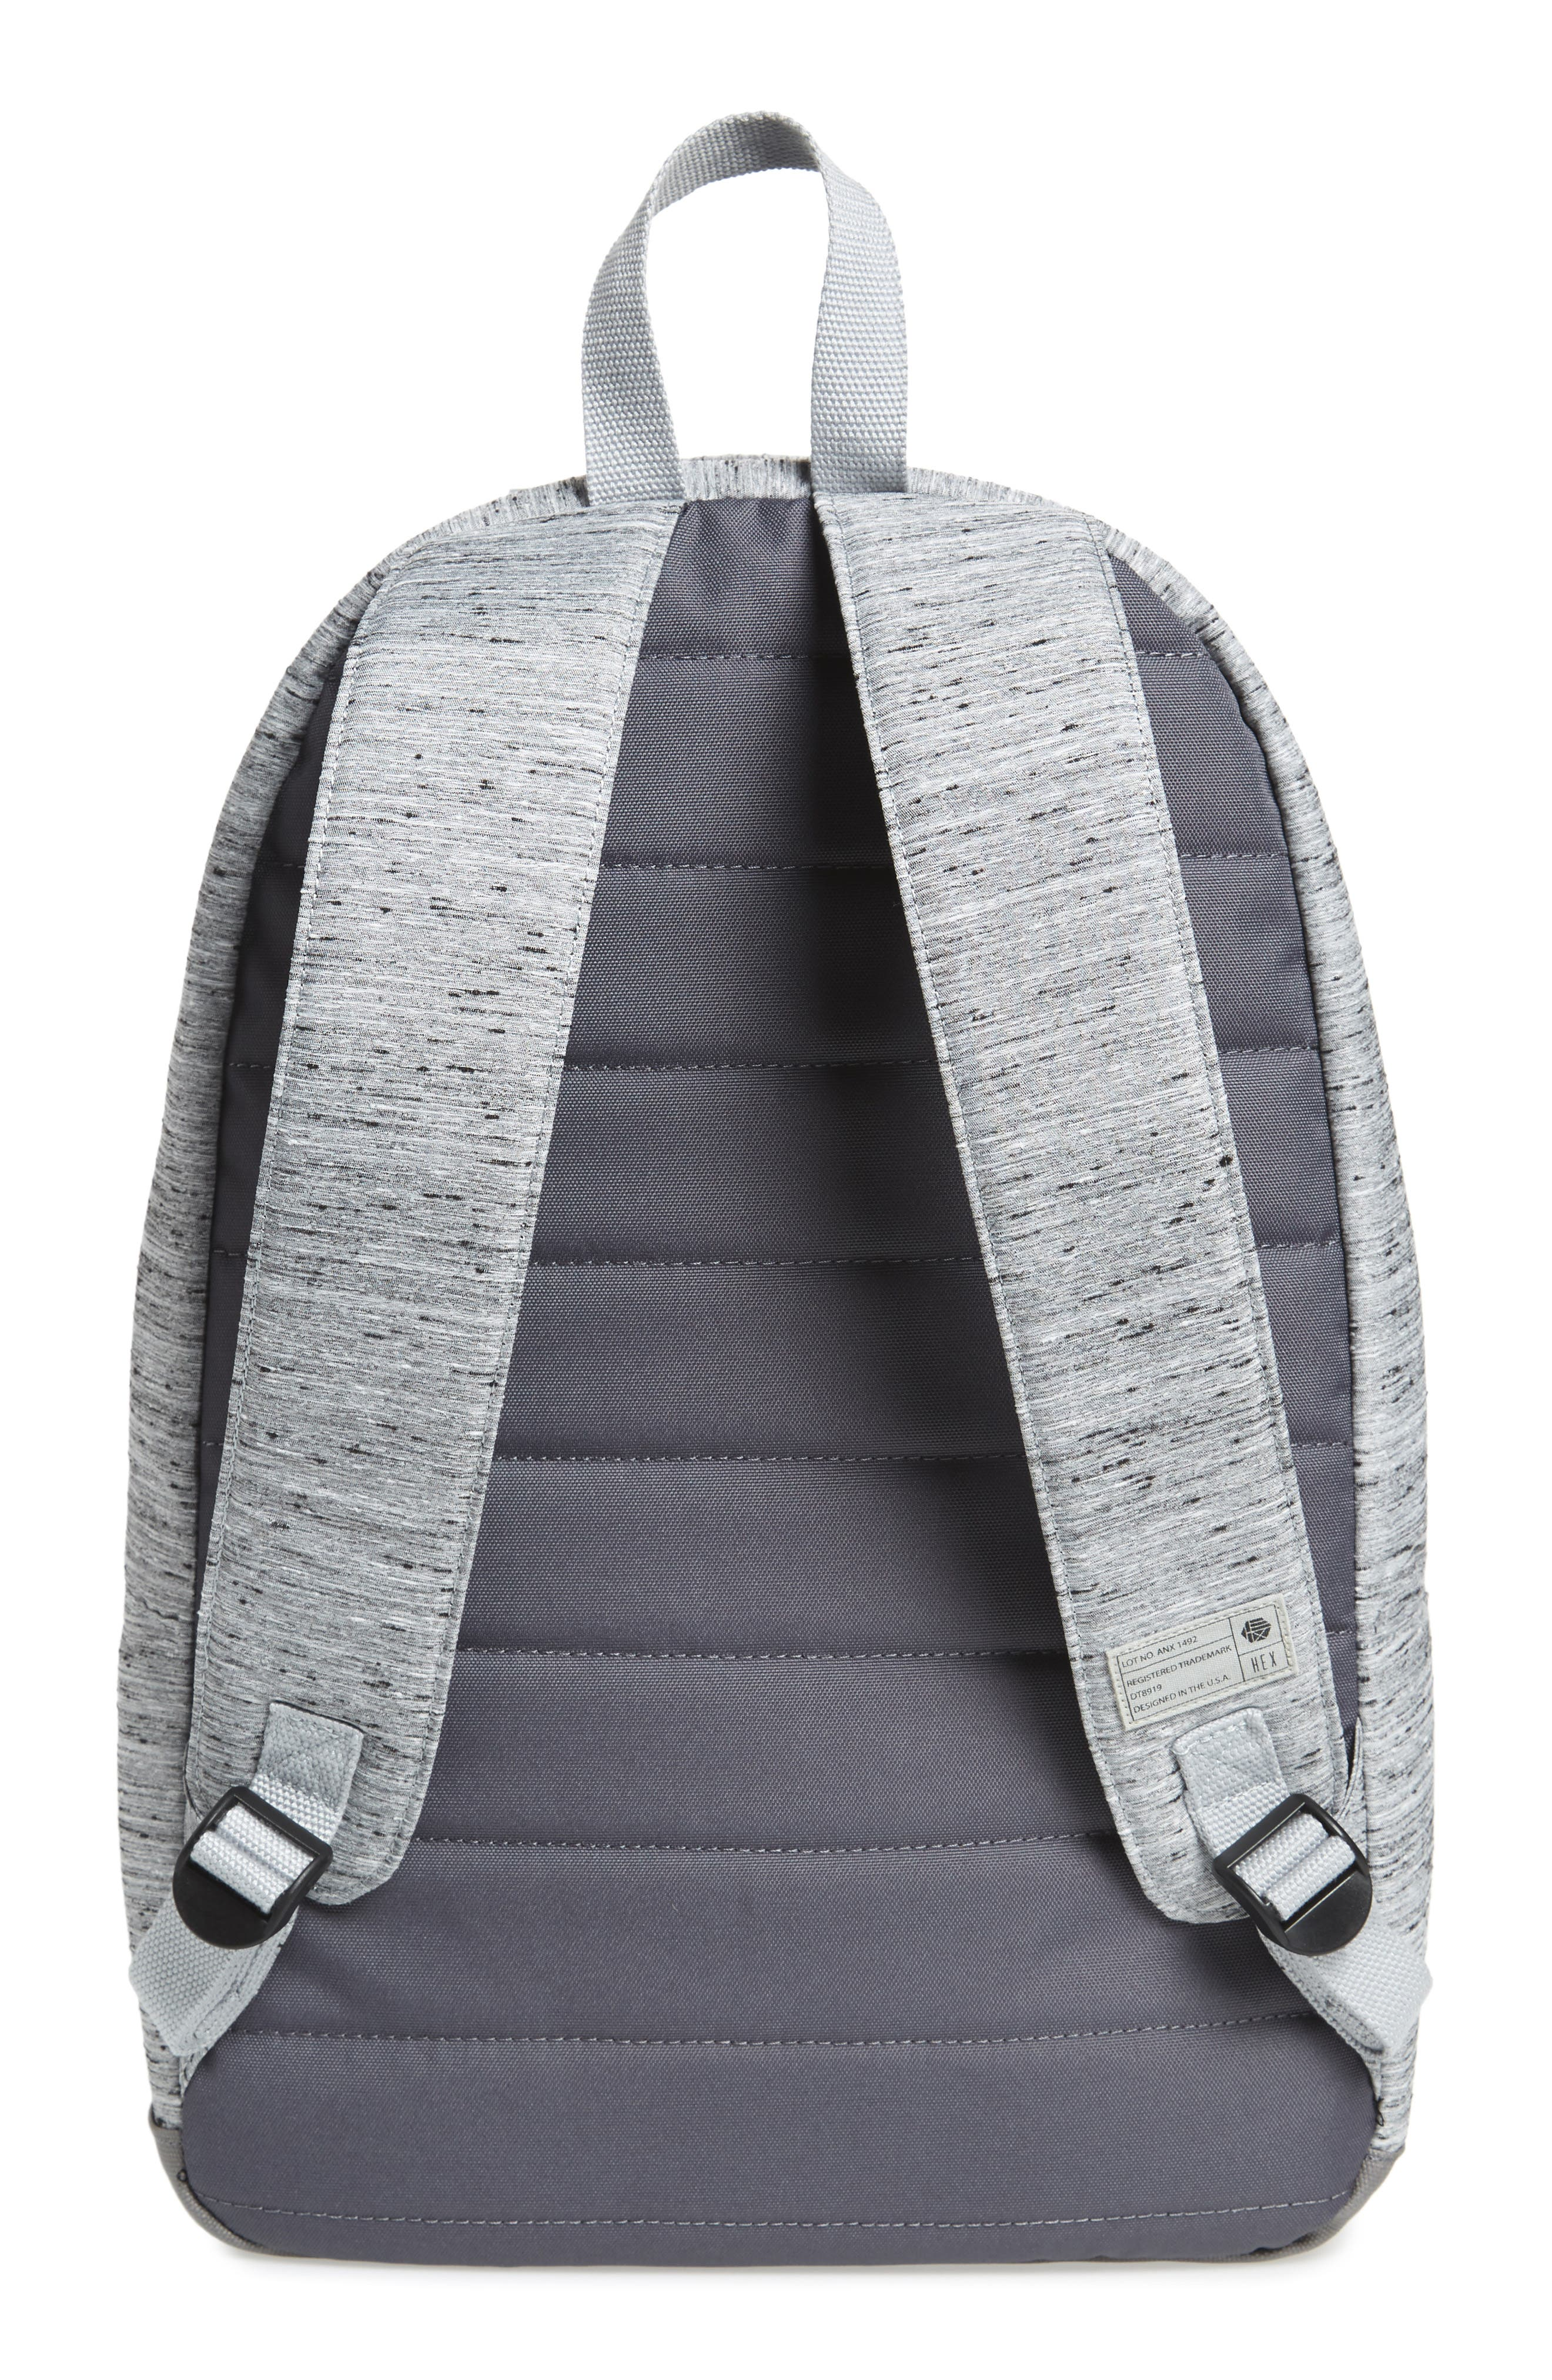 'Echo' Backpack,                             Alternate thumbnail 3, color,                             Annex Grey Slub